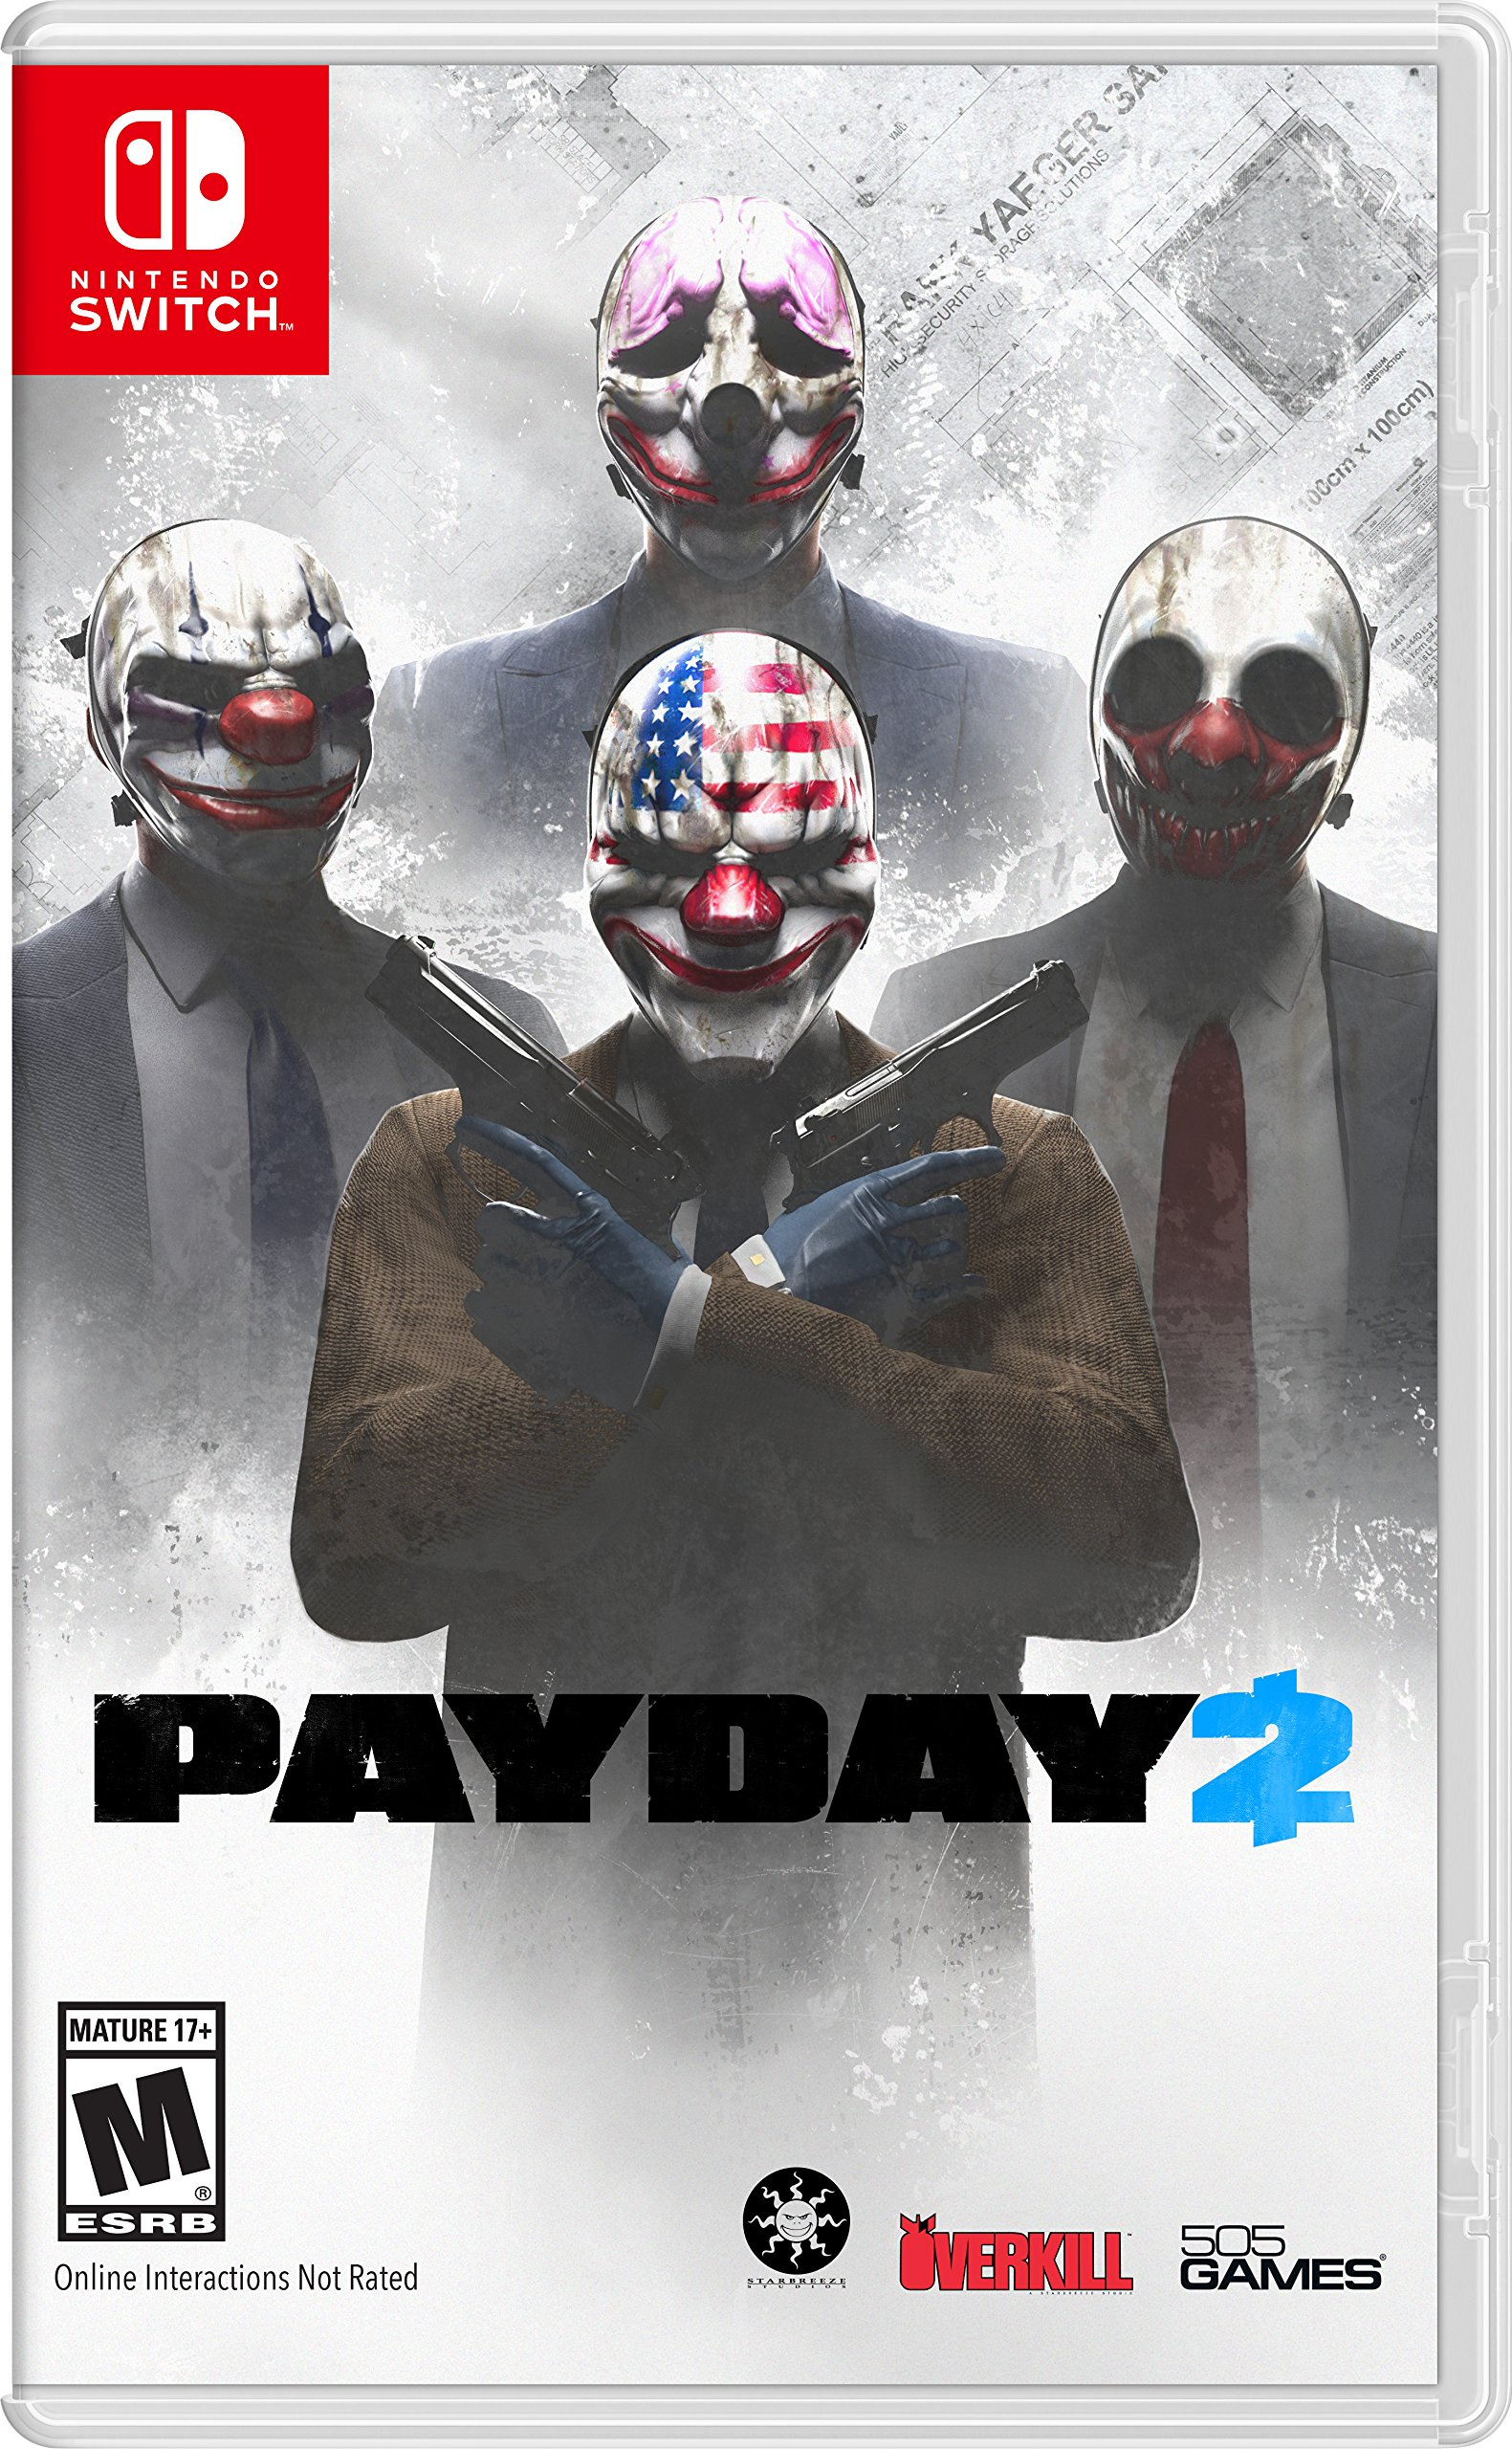 Payday 2 Switch Release Date